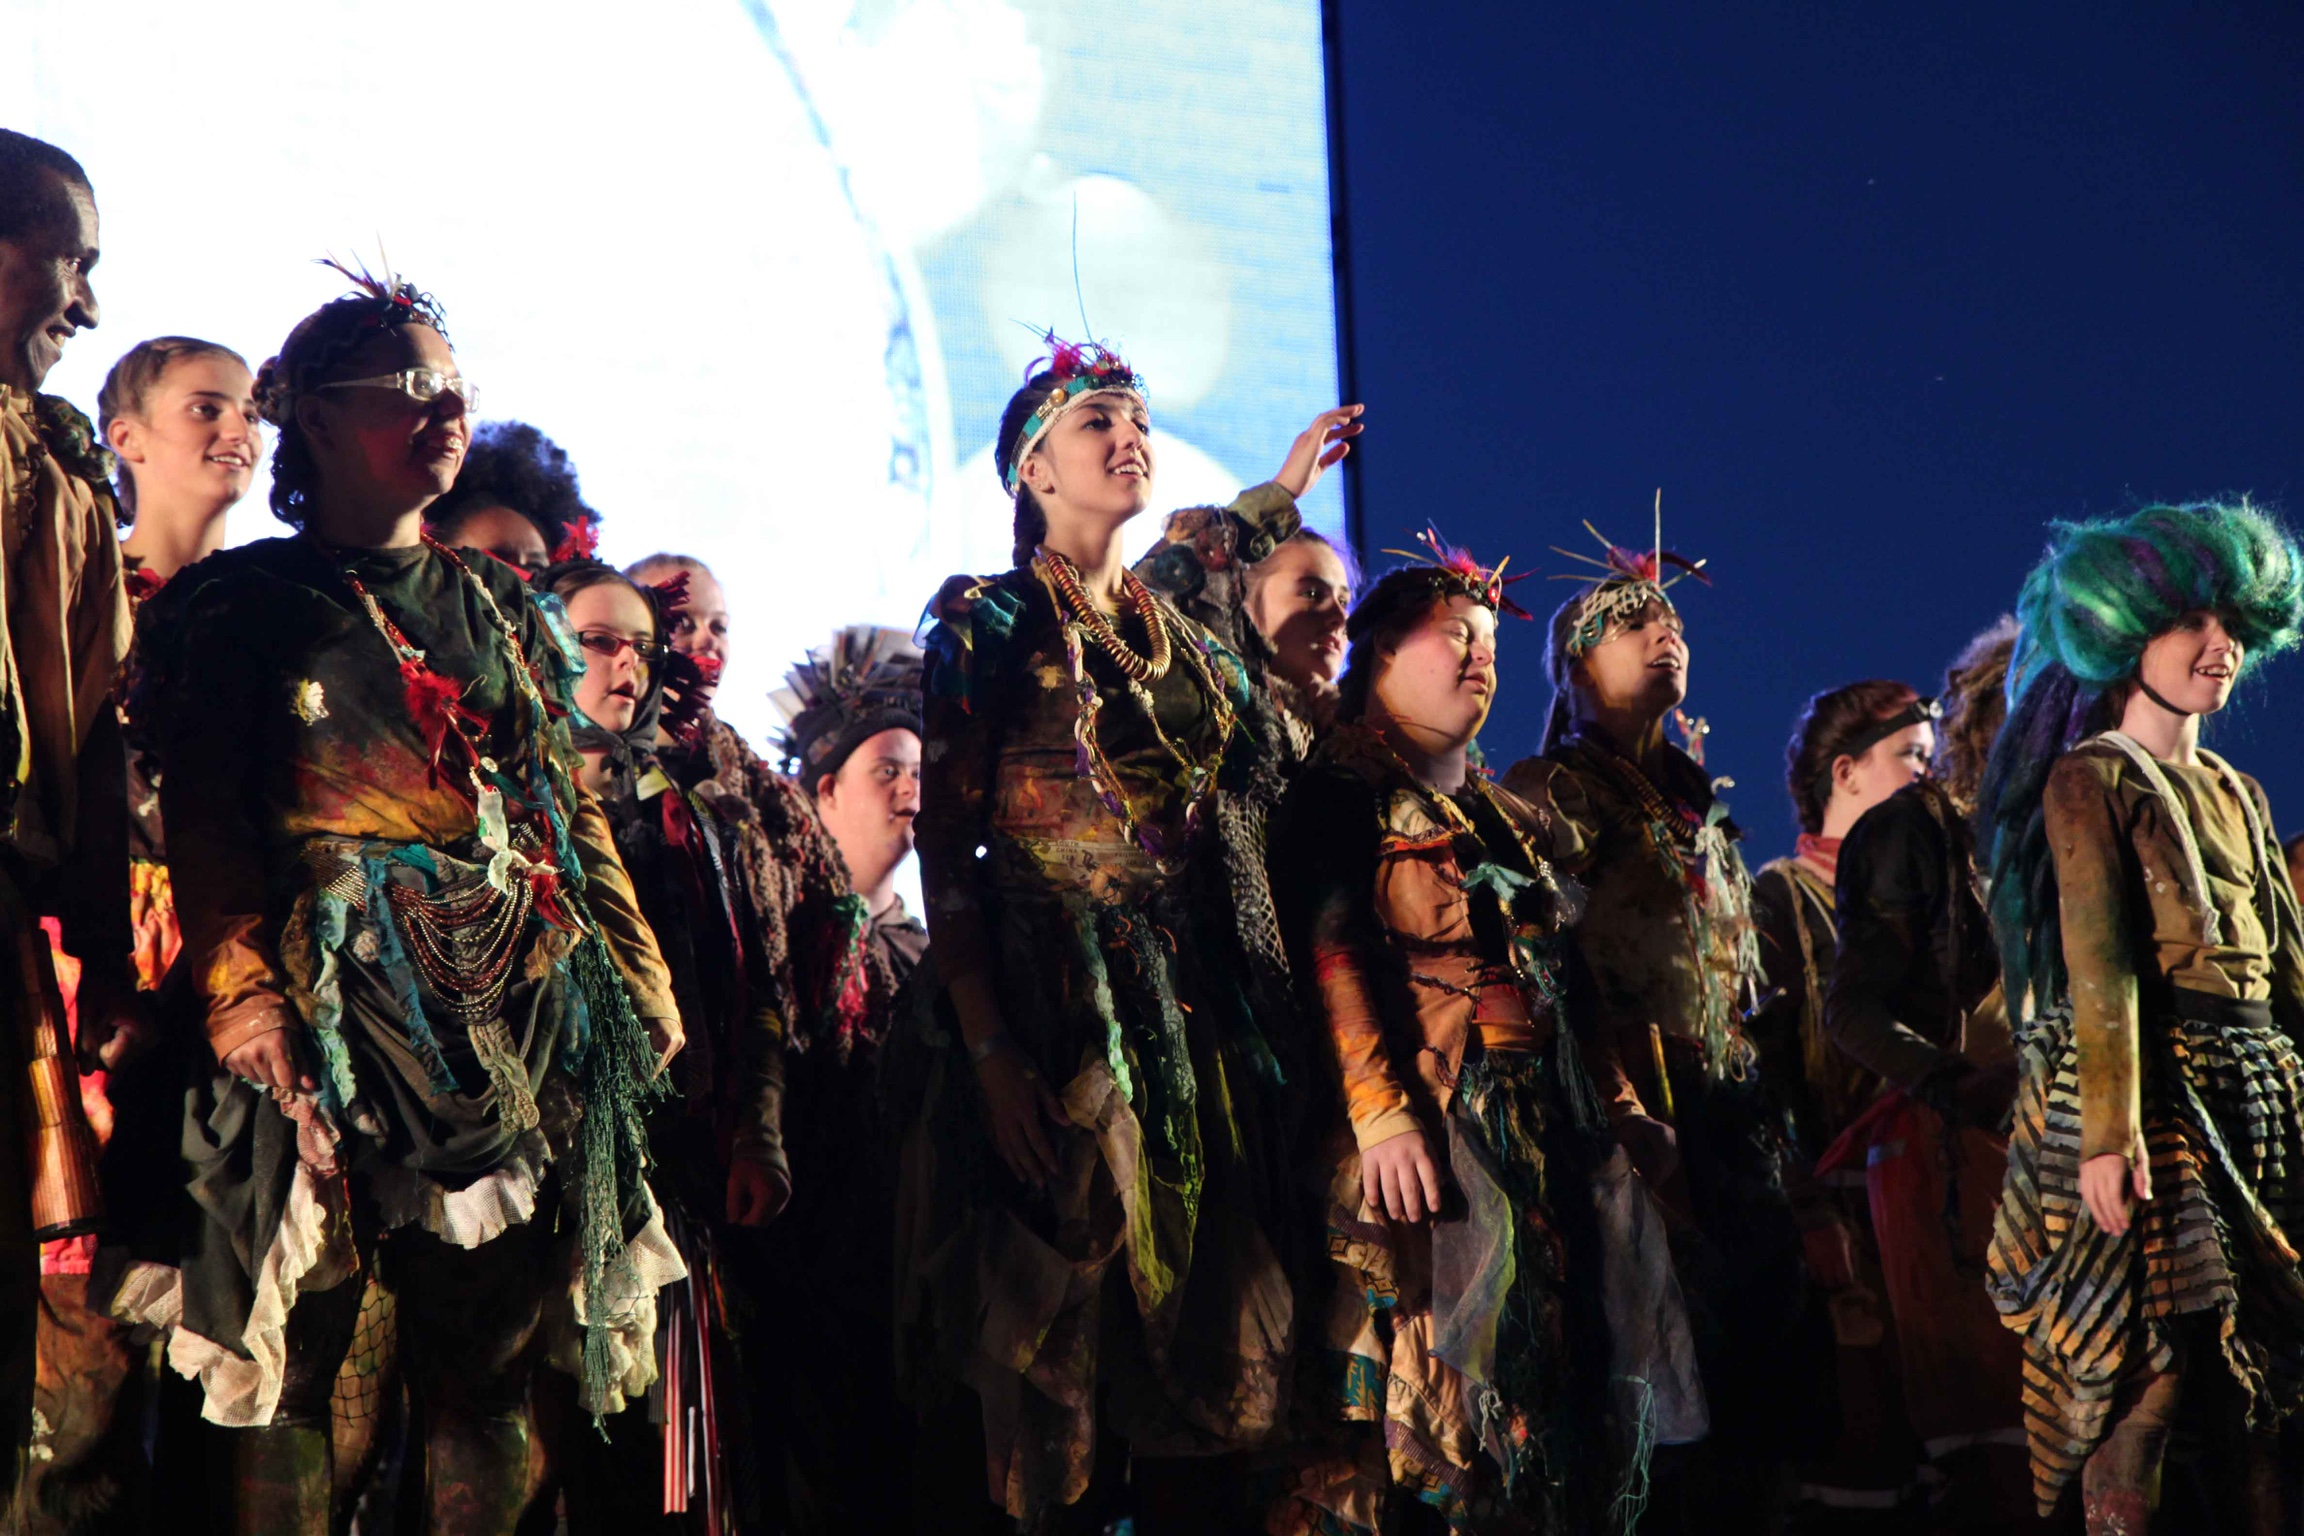 Performers in costume on stage, singing and moving - Breathe, London 2012 Olympics